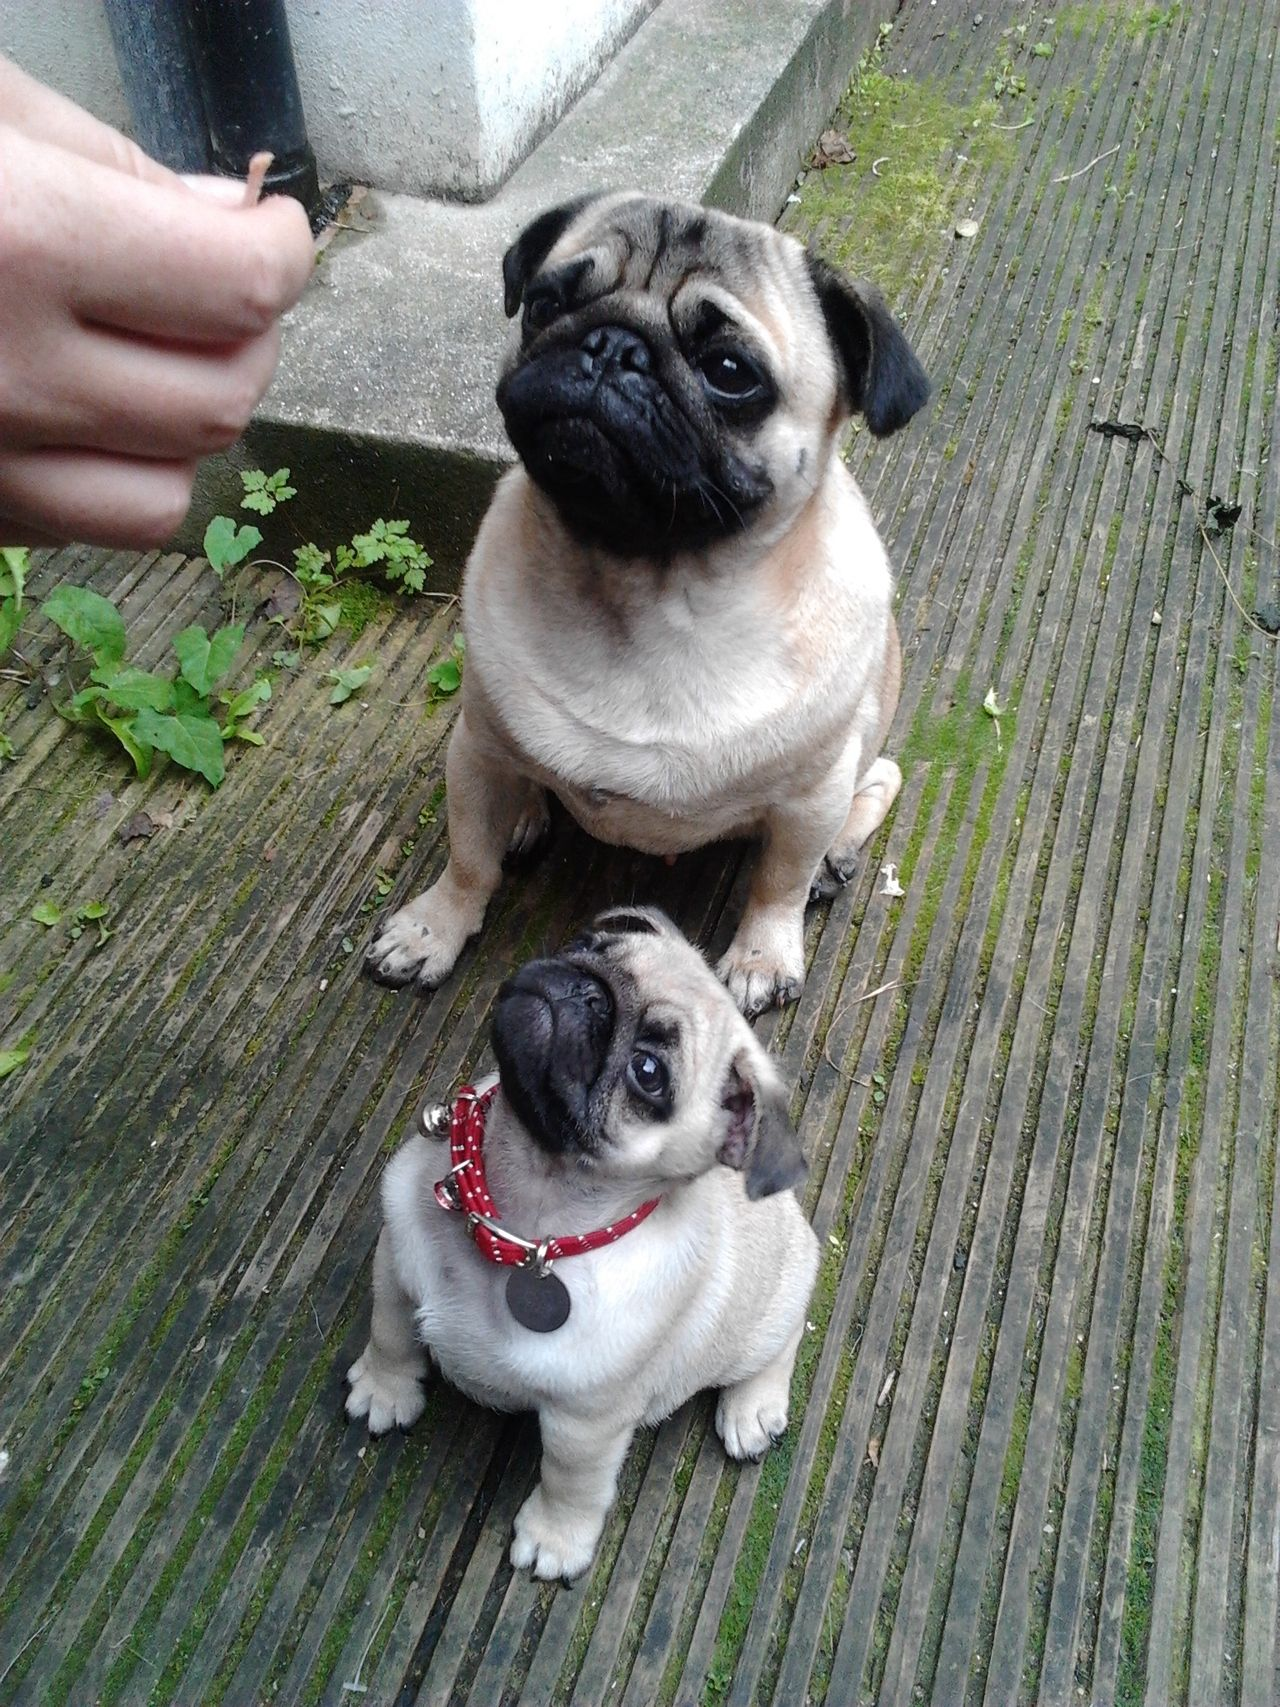 Pin By Lucia On Pugs Cute Pugs Cute Animals Baby Pugs